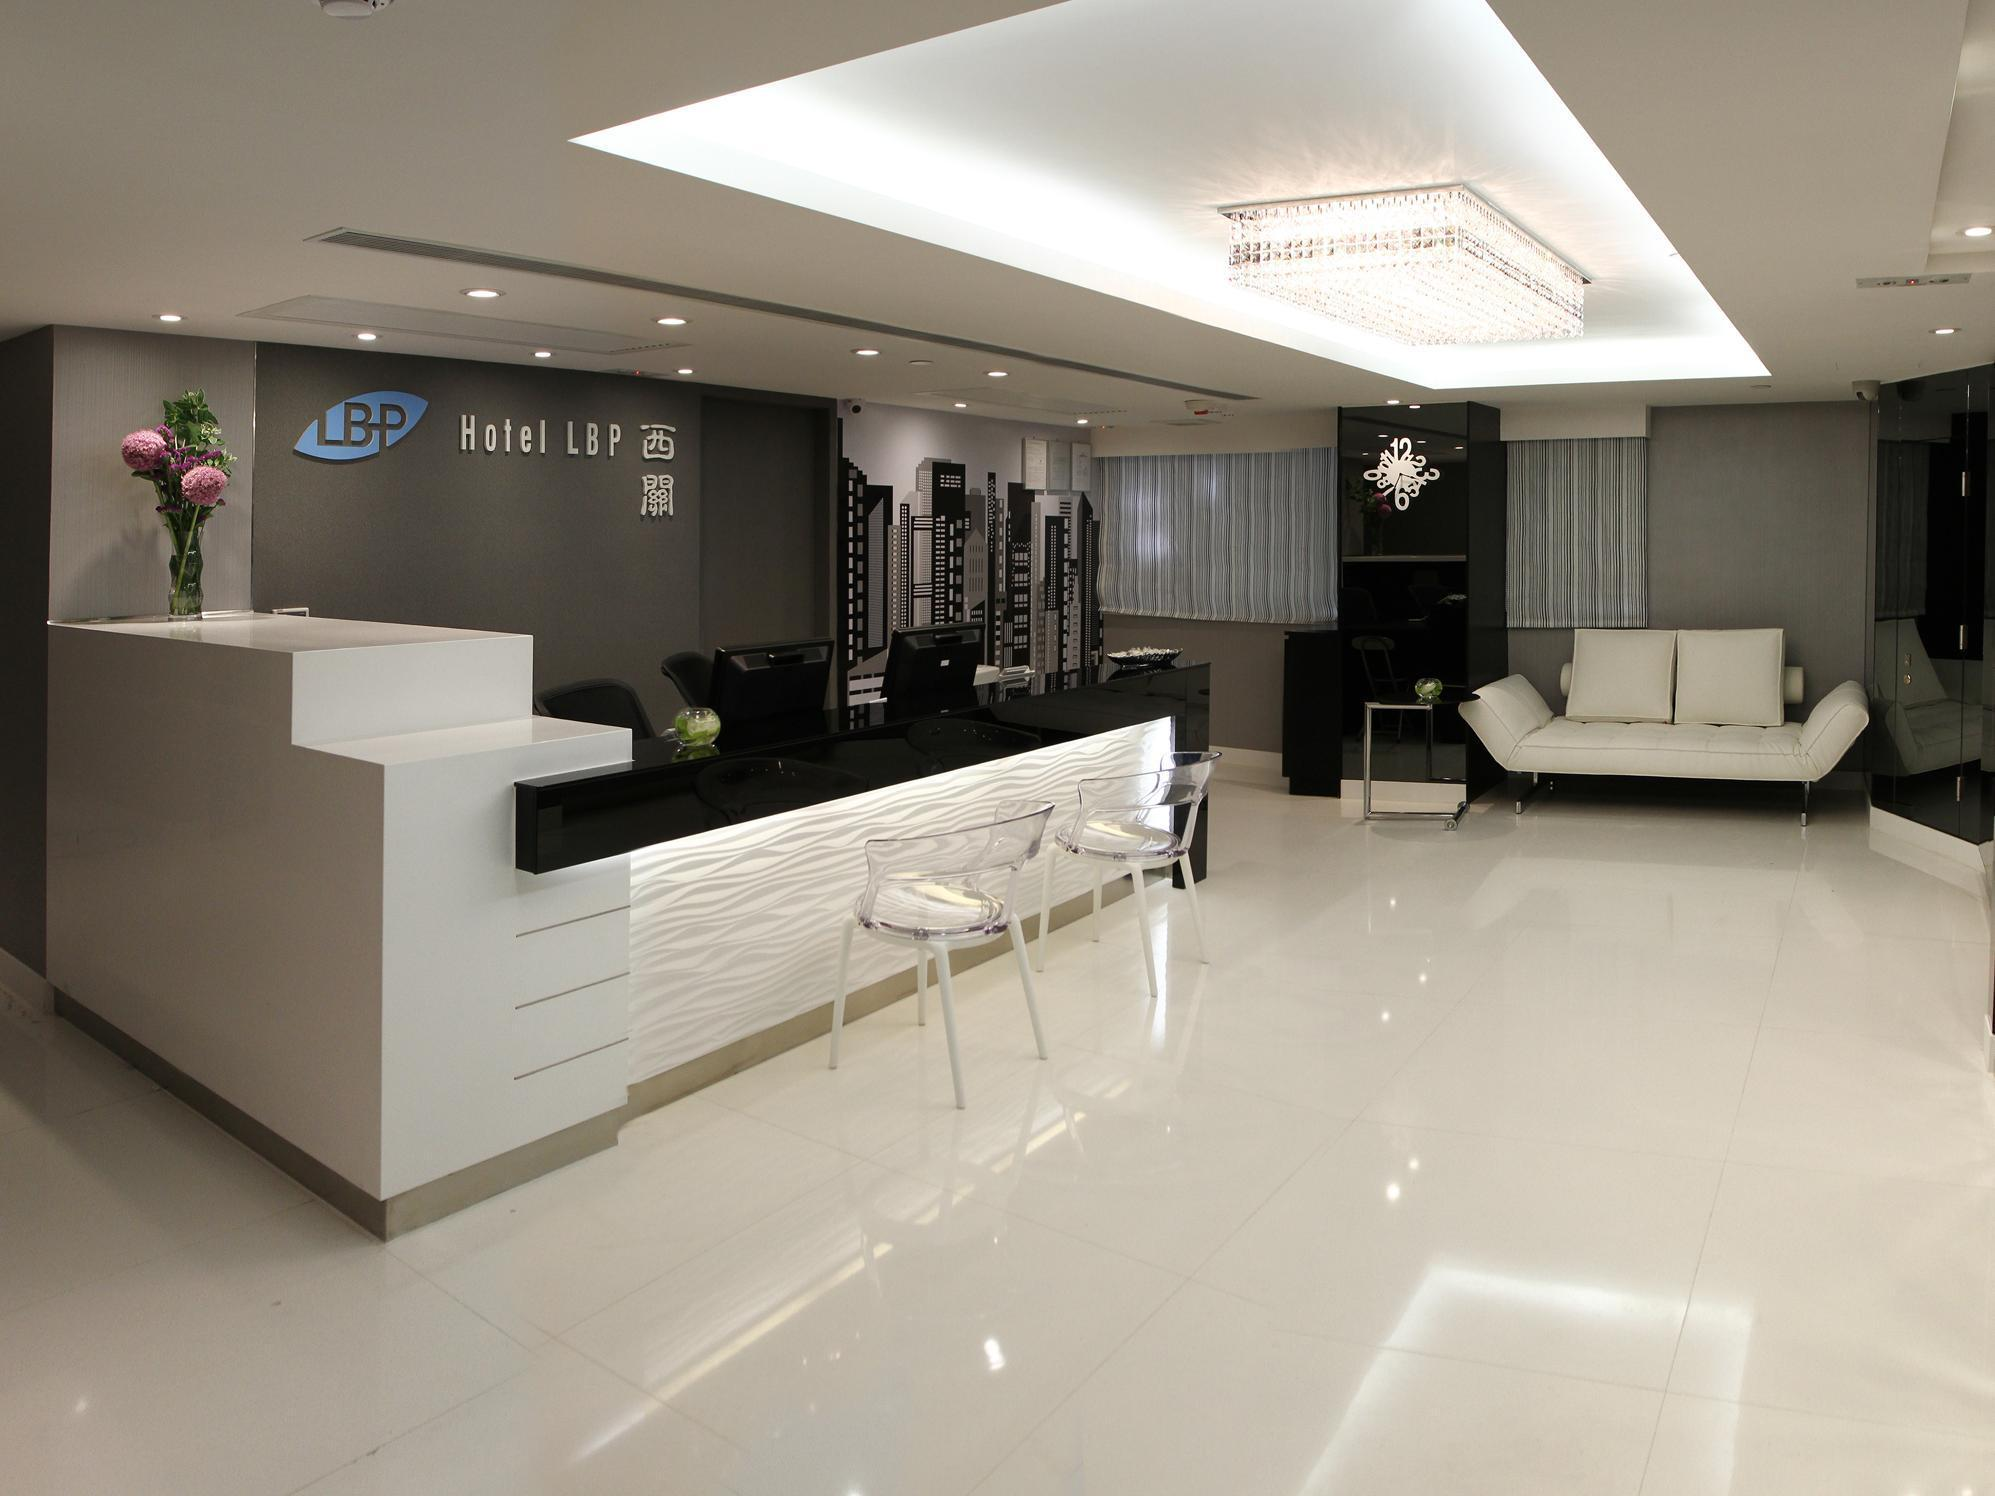 Hotel LBP Hong Kong - Reception